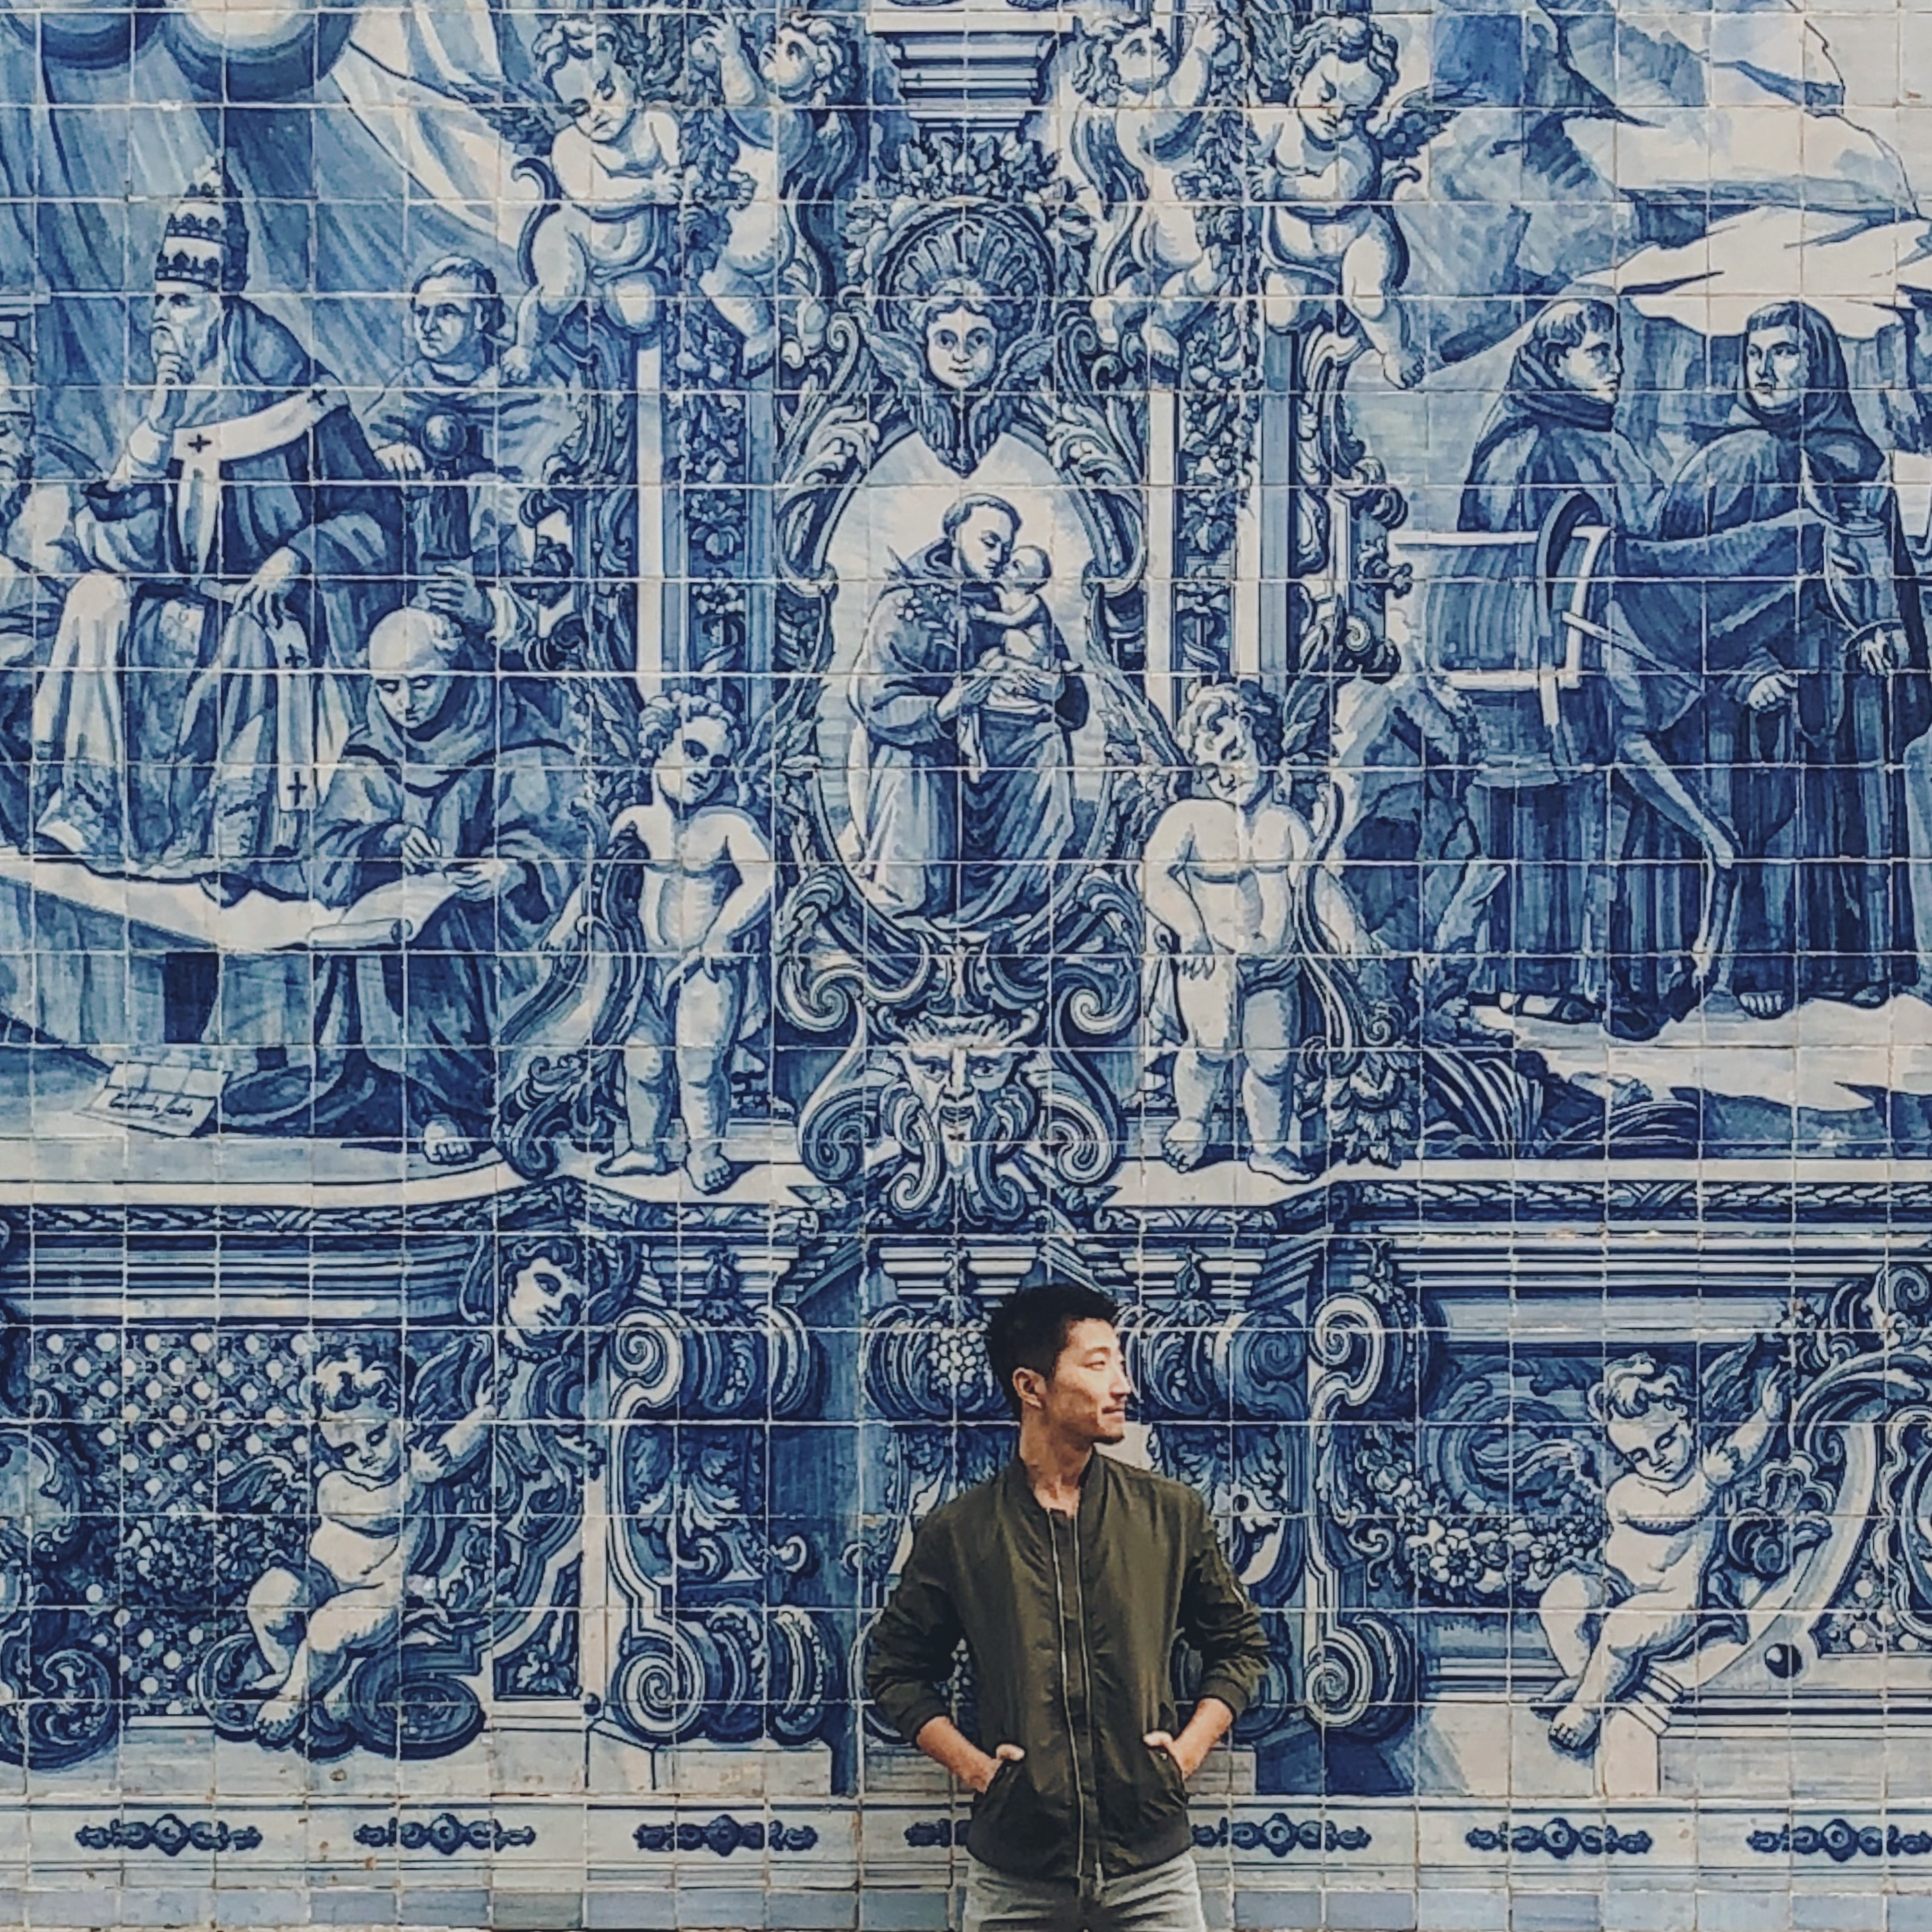 Man standing in front of blue tin-glazed ceramic tiled façade